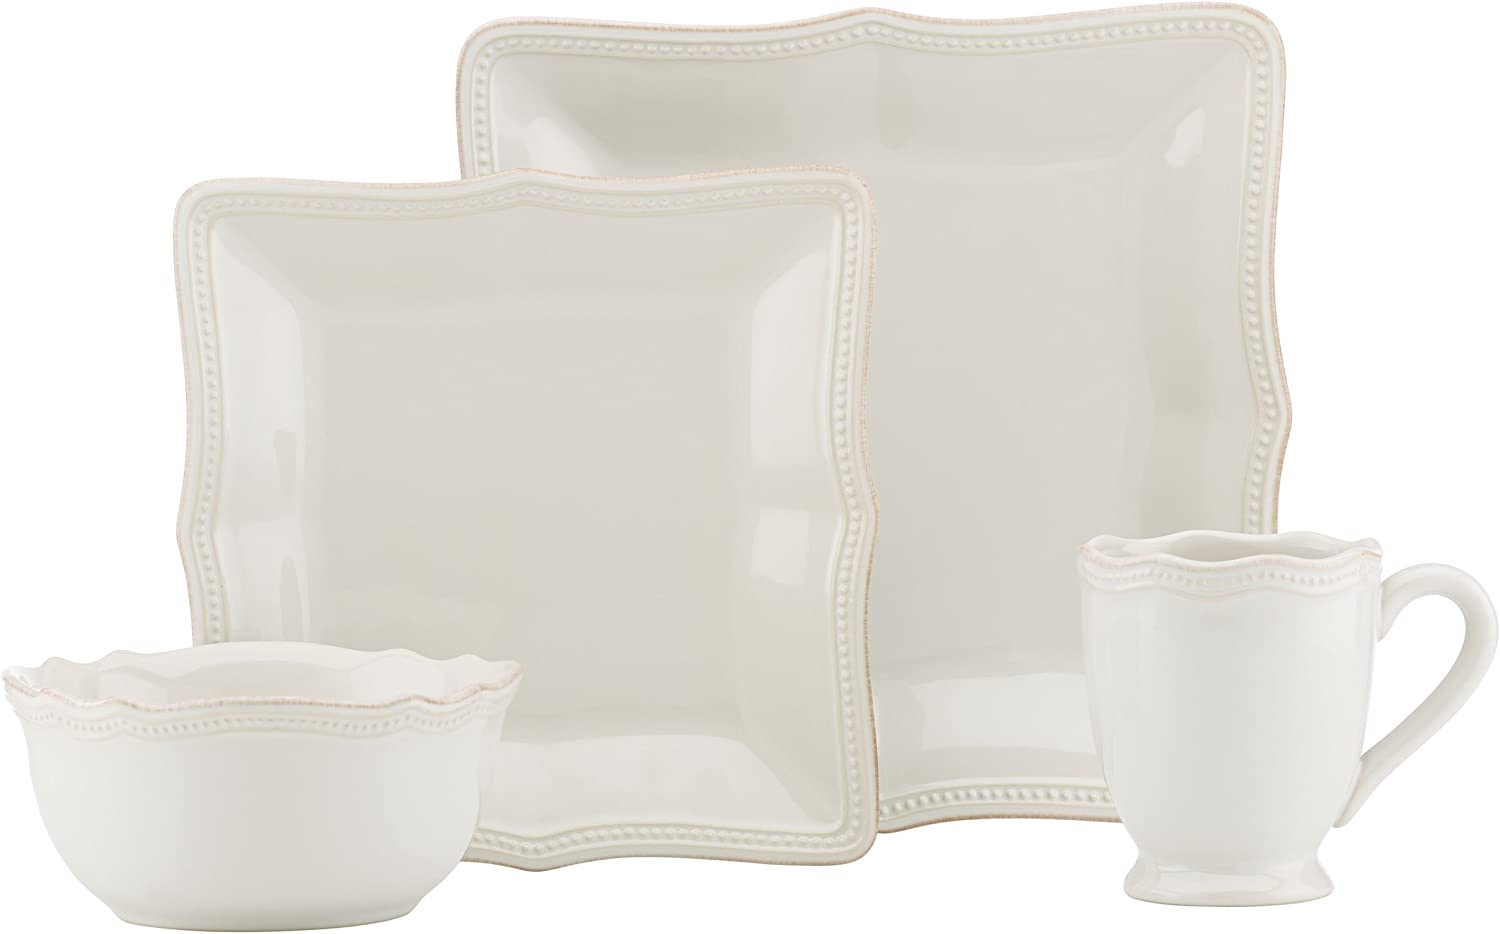 Lenox French Perle Bead White Square 16 Piece Dinnerware Place Setting Set, Service for 4